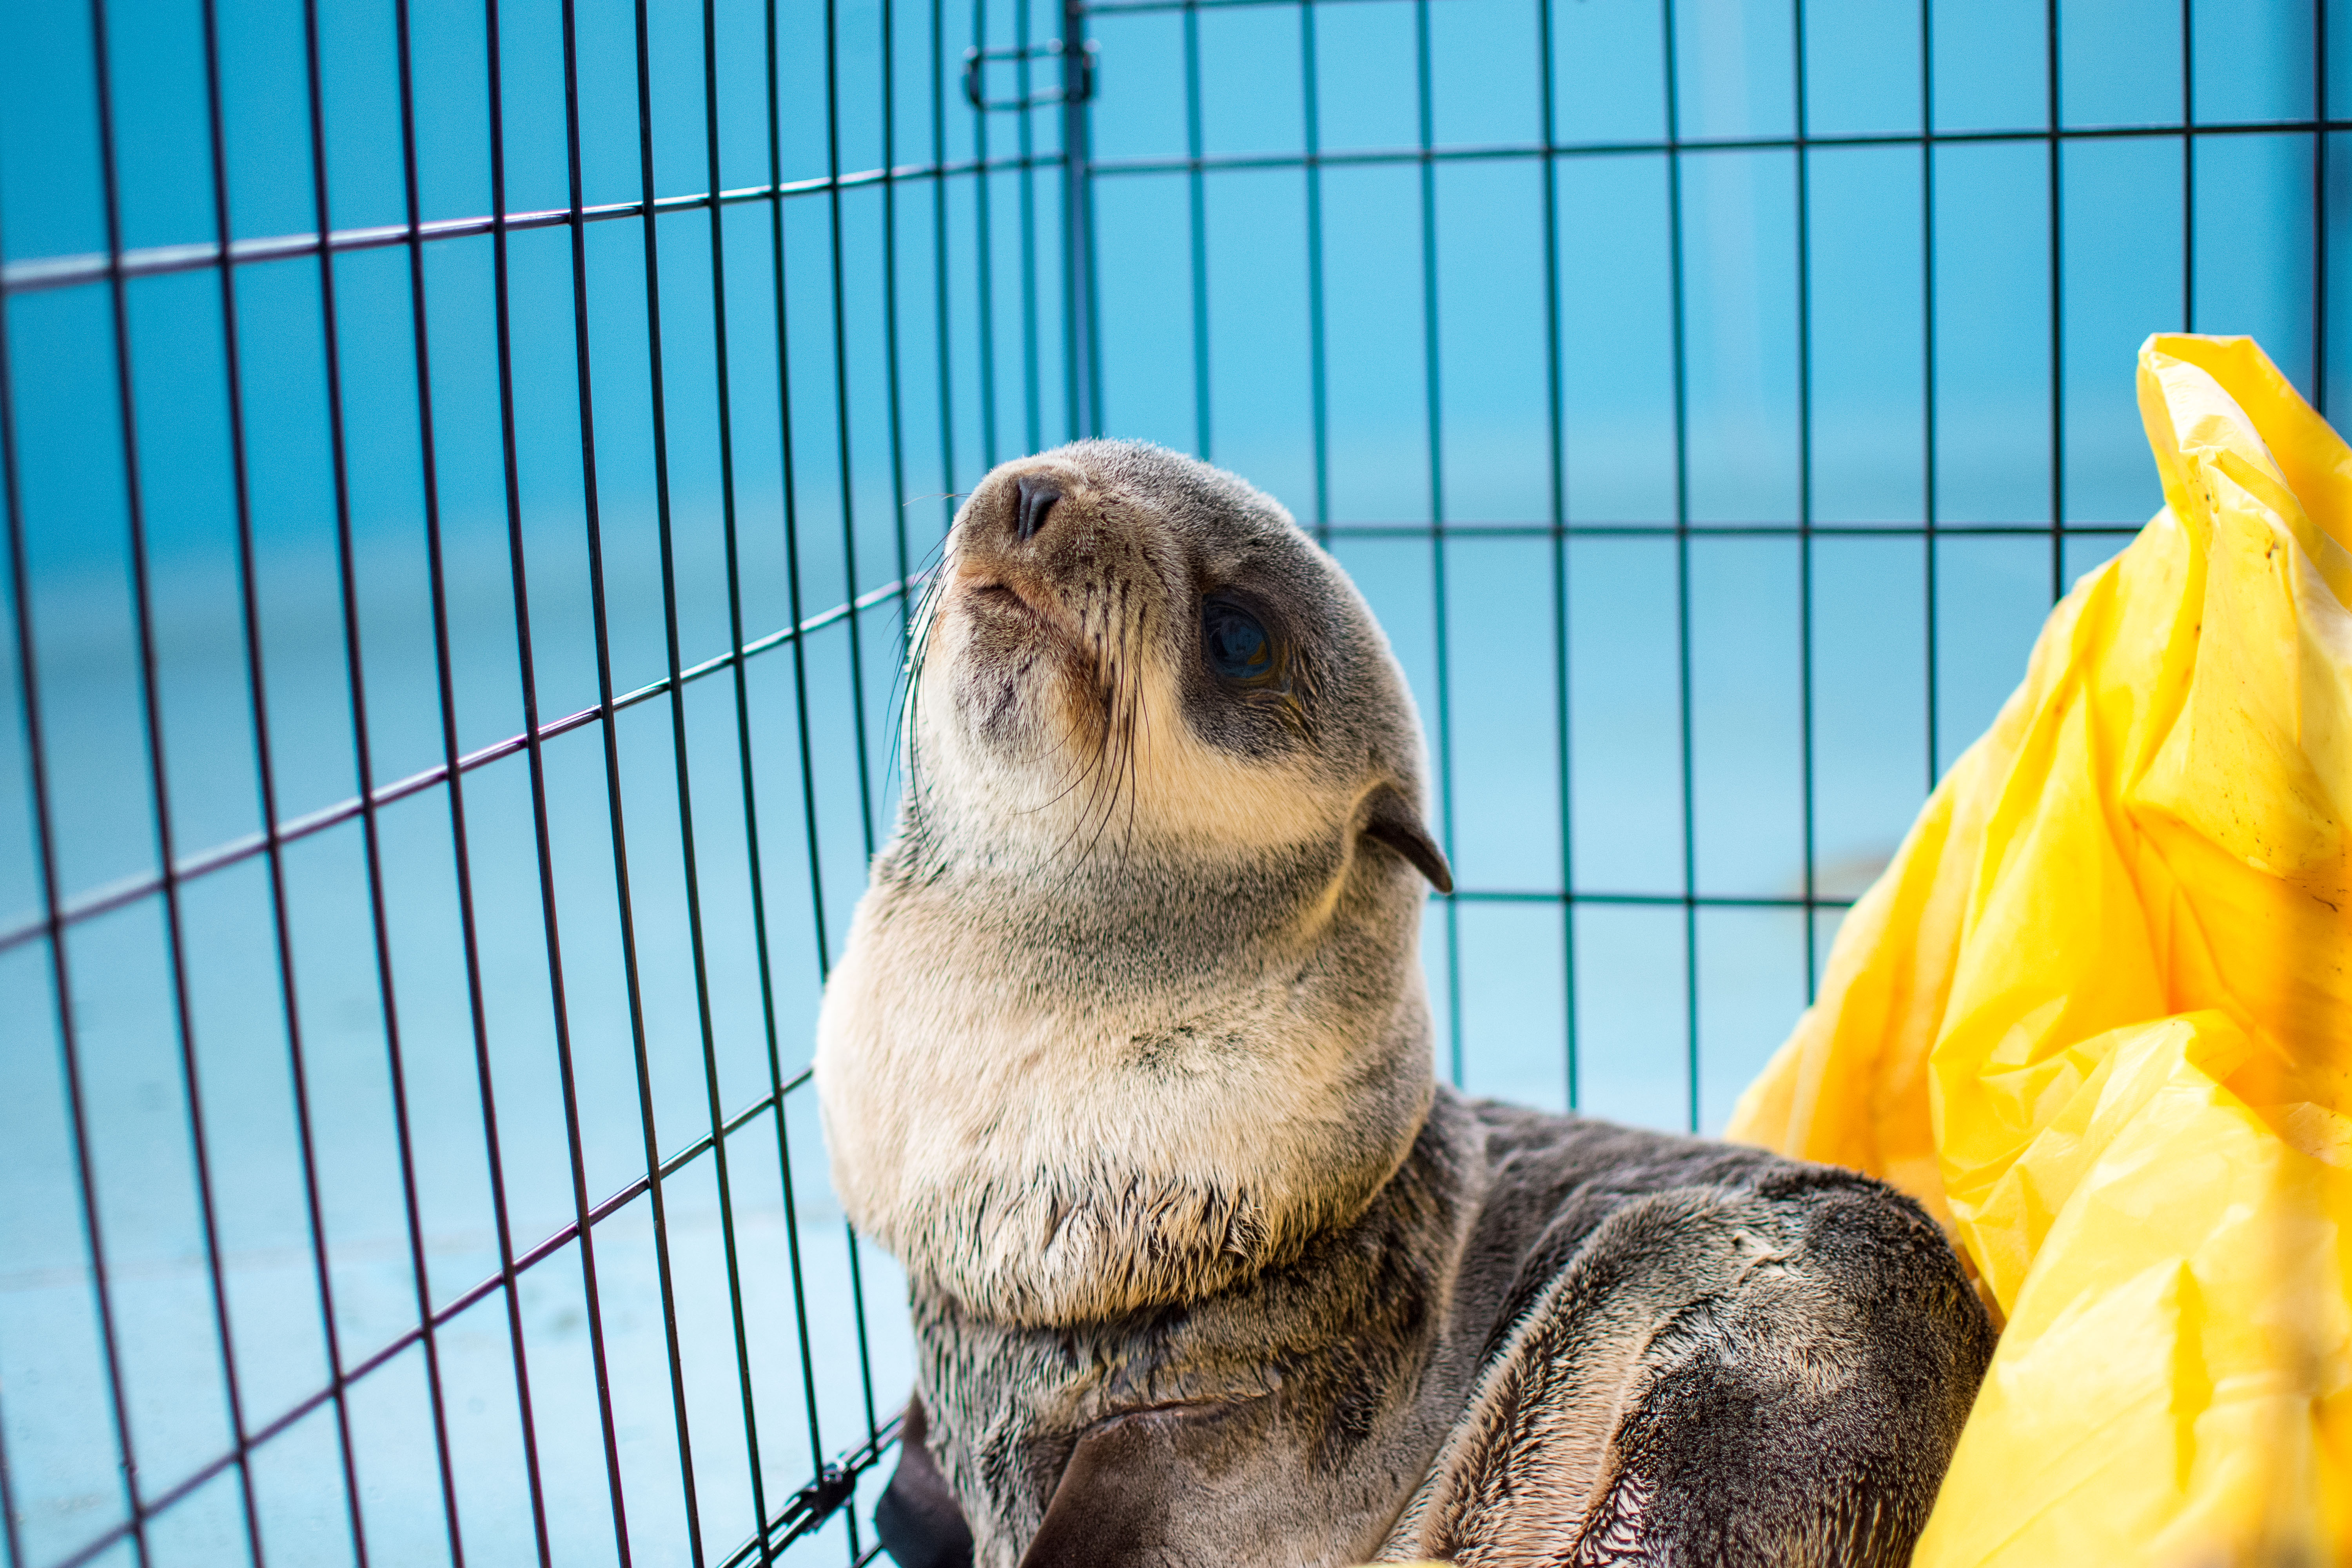 "<p>Jim Burke, Oregon Coast Aquarium Director of Animal Husbandry, said a swift return to the wild is in the animal's best interest.</p><p>""The sooner the pup is released, the better,"" said Burke. ""The animal would not have survived without being dis-entangled. He is stronger today now that we've removed the entanglement and administered multiple courses of antibiotics. The best thing is to get the pup back in the water where it can hunt for food. Luckily, the wound appears superficial."" (Oregon Coast Aquarium)</p>"